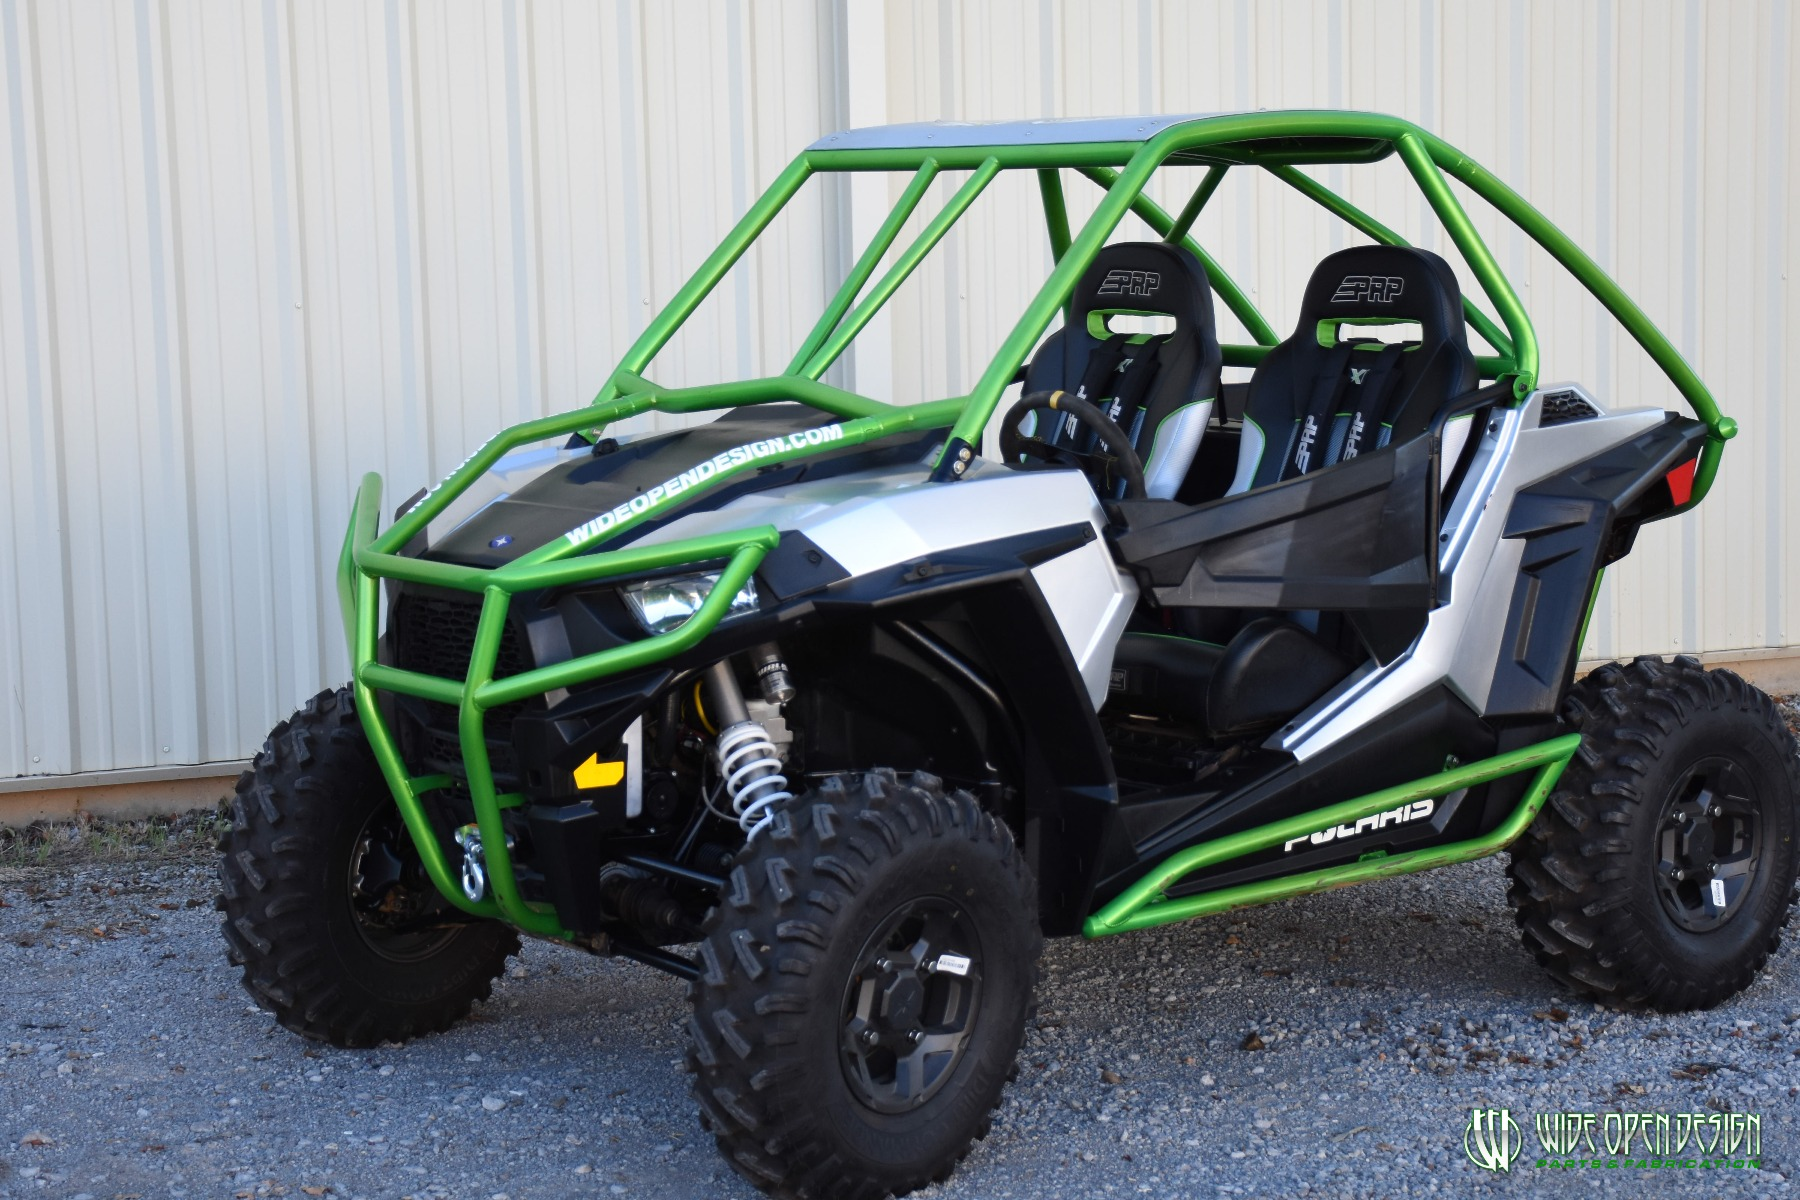 Jason's 1000s RZR with Wide Open Design Rolled Roof Cage, Front Bumper with Tie In, and Rocker Guards 17